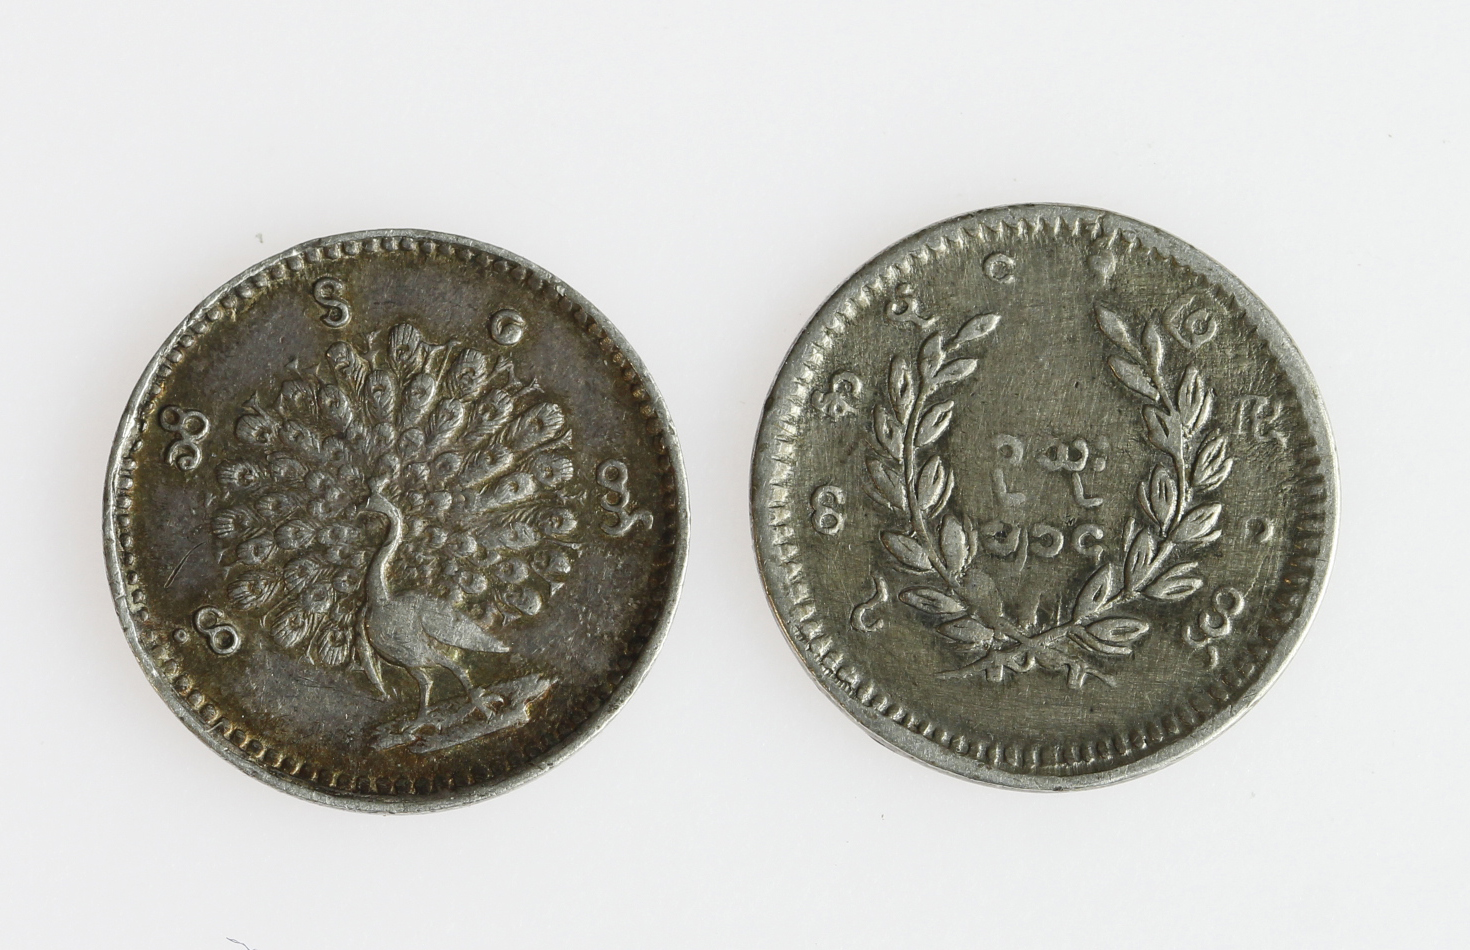 Burma (2) silver peacock Mu's CS 1214 (1853) two different varieties of KM# 7.1; one has a more - Image 2 of 2